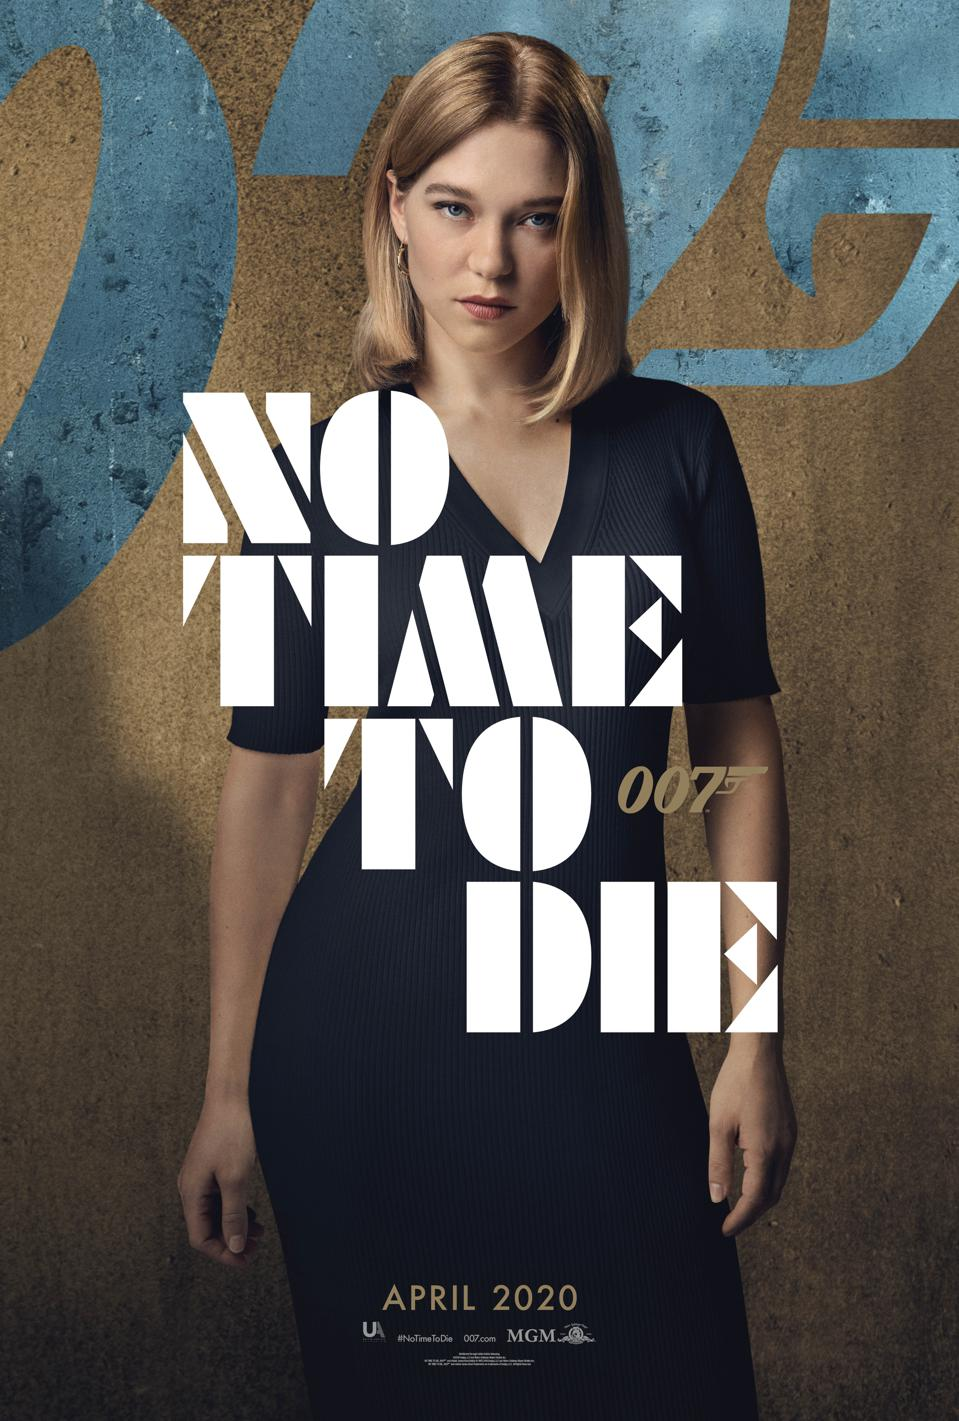 Lea Seydoux in 'No Time to Die'